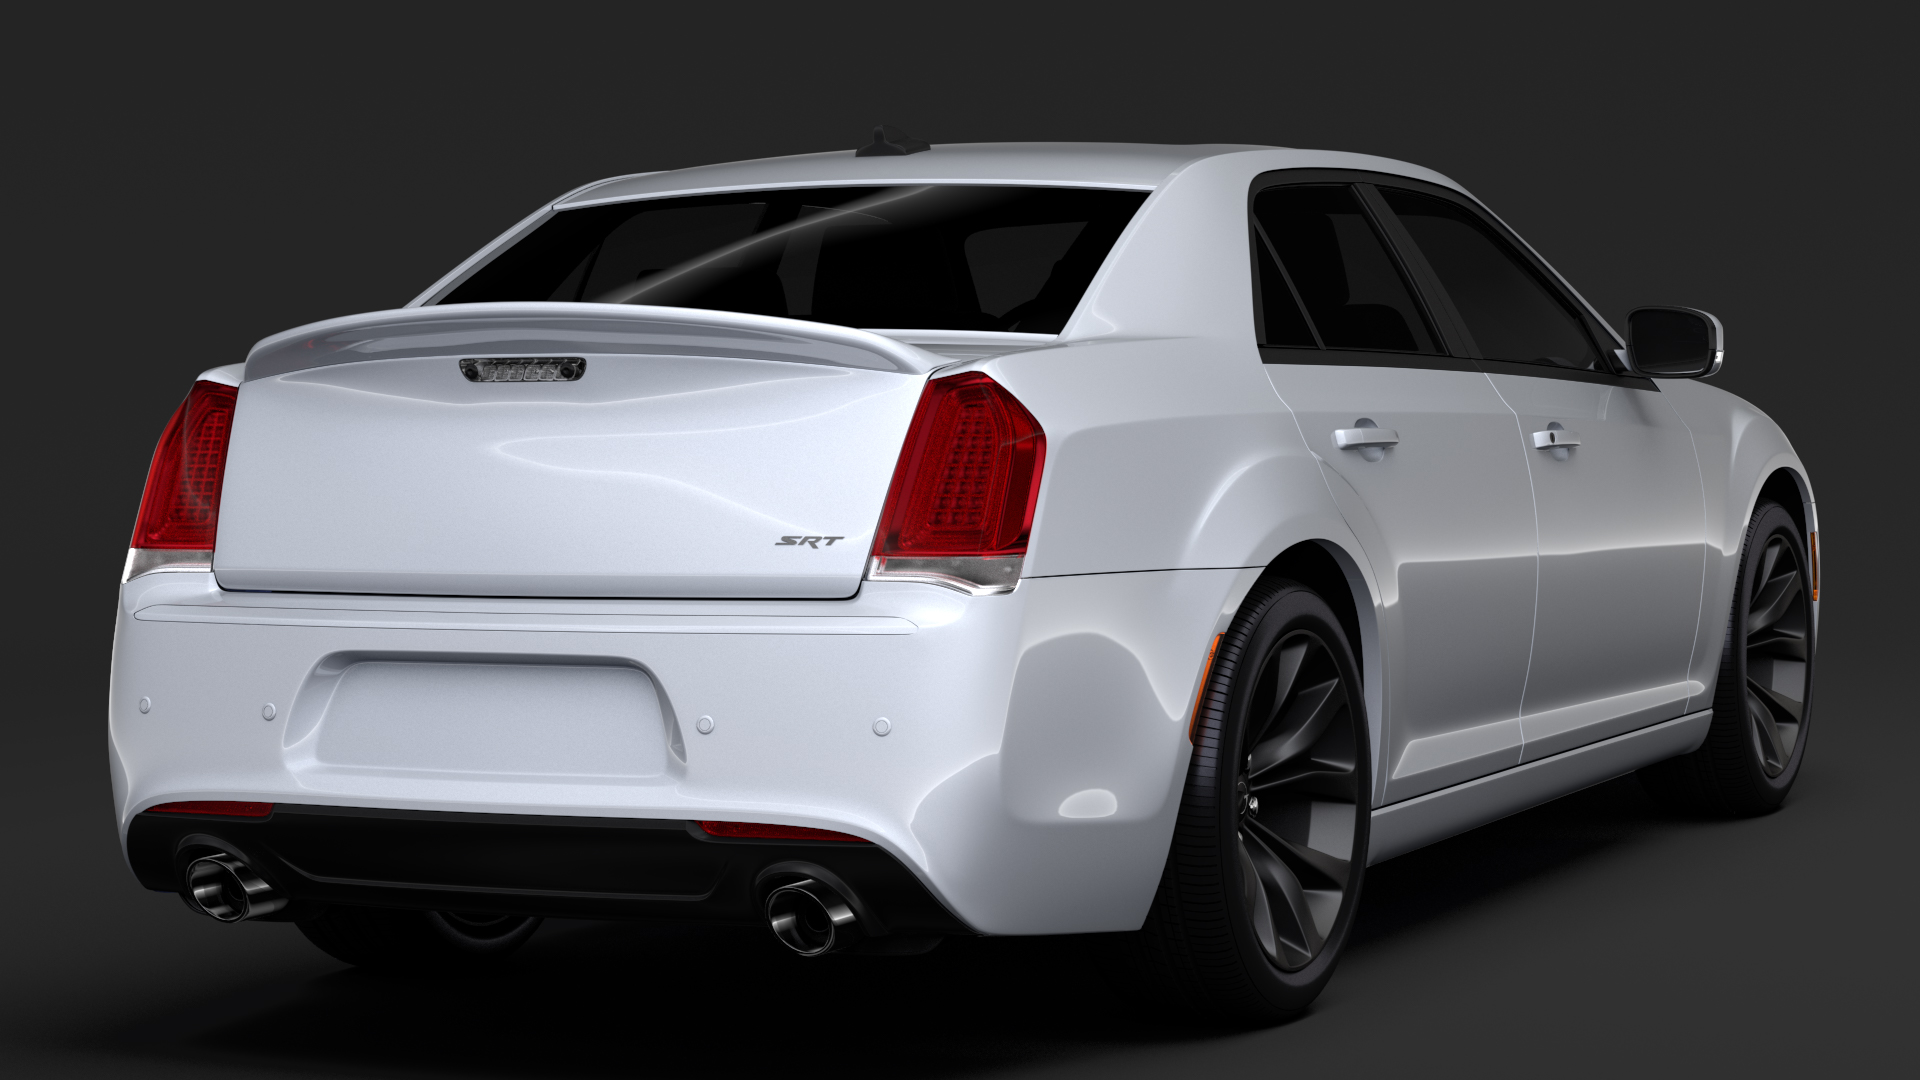 chrysler 300 srt lx2 2018 3d model 3ds max fbx c4d lwo ma mb hrc xsi obj 286096